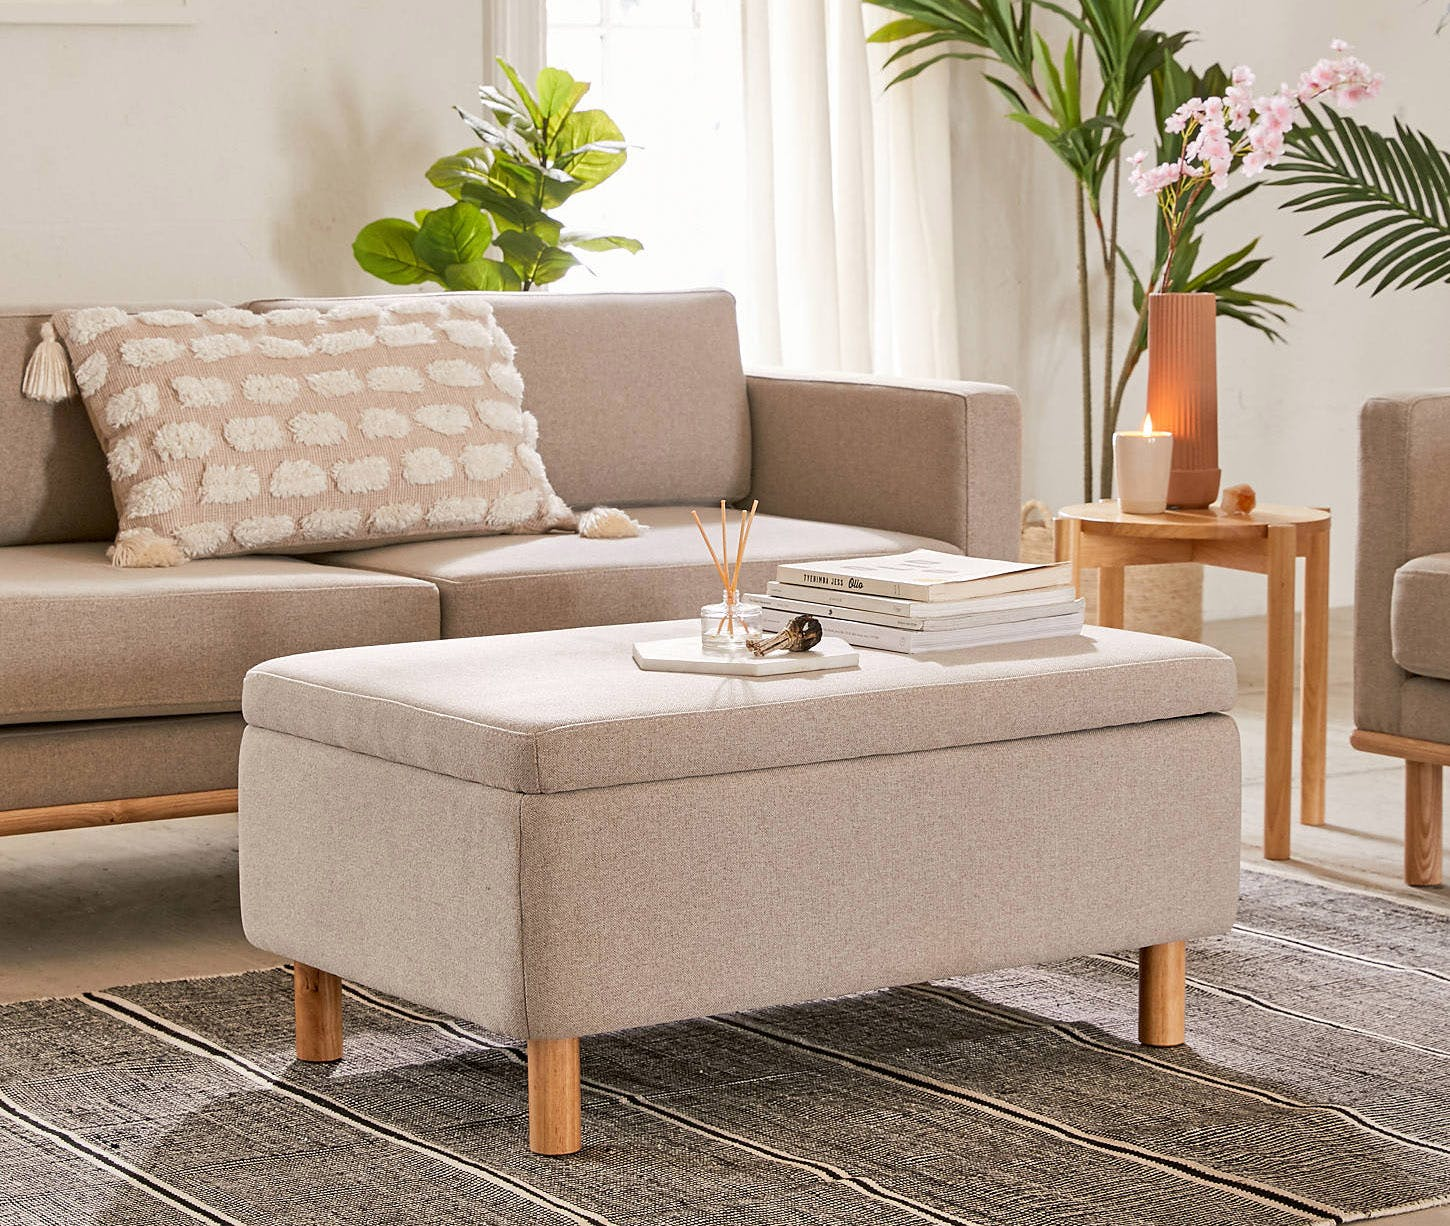 10 Storage Benches Under 100 That Will Declutter Your Home Instantly